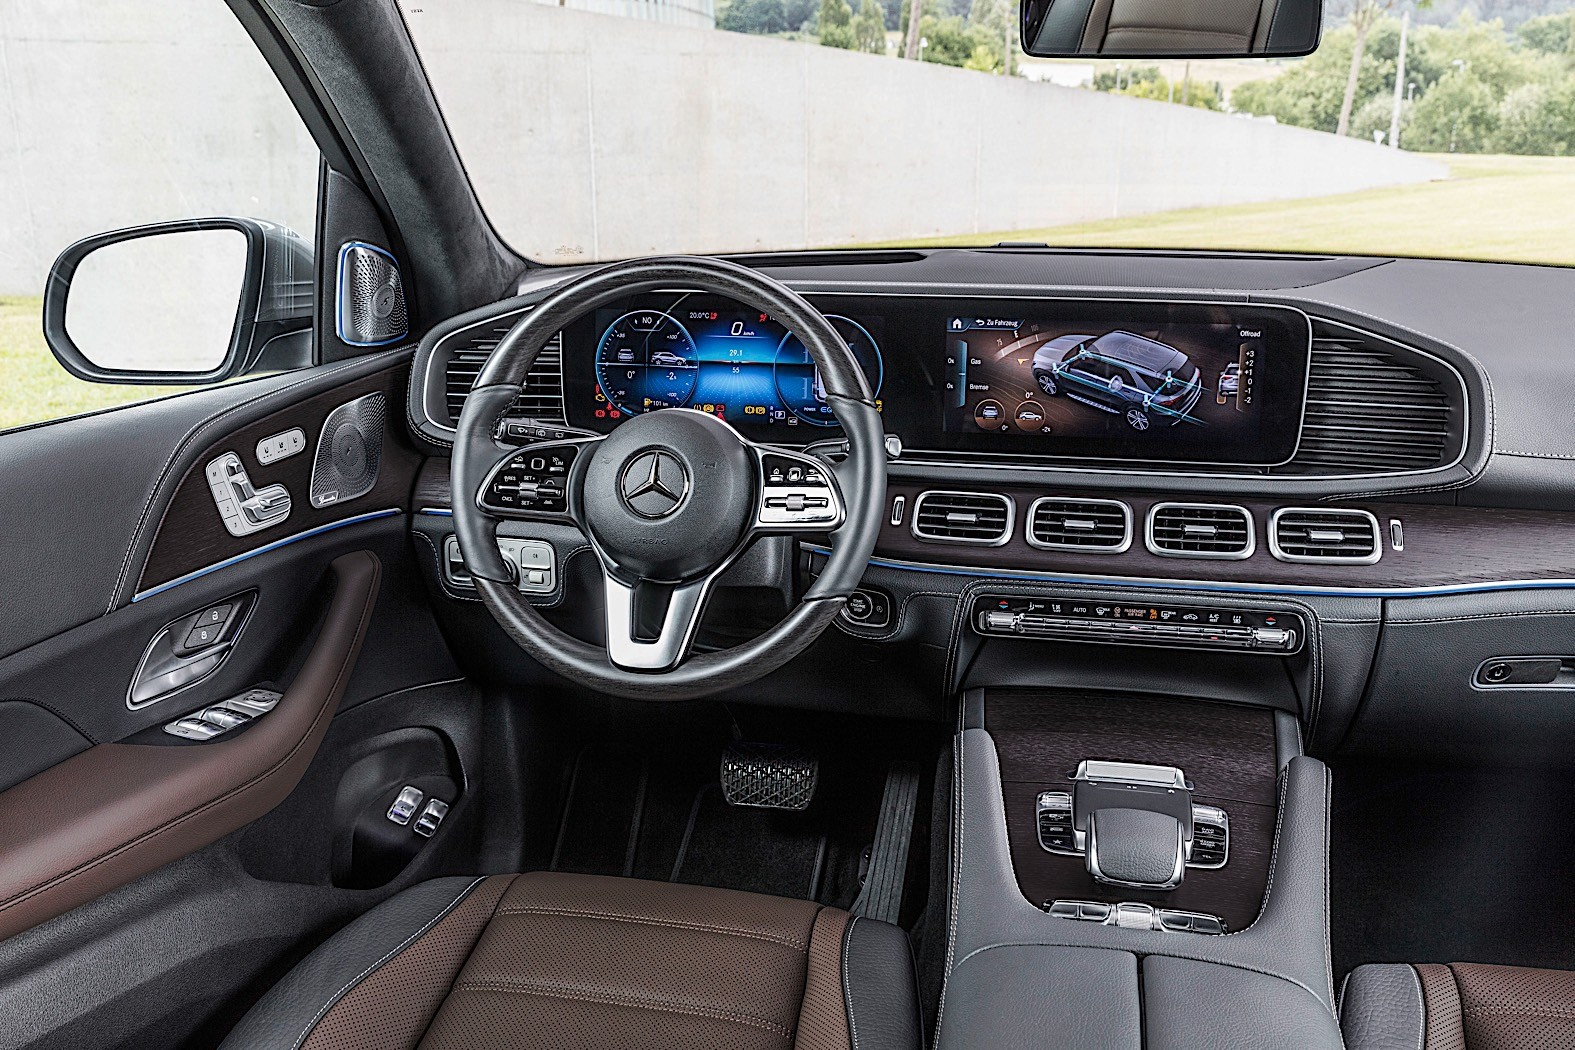 Nissan Qashqai 2016 Interieur 2019 Mercedes-benz Gle Breaks Cover, Packed With